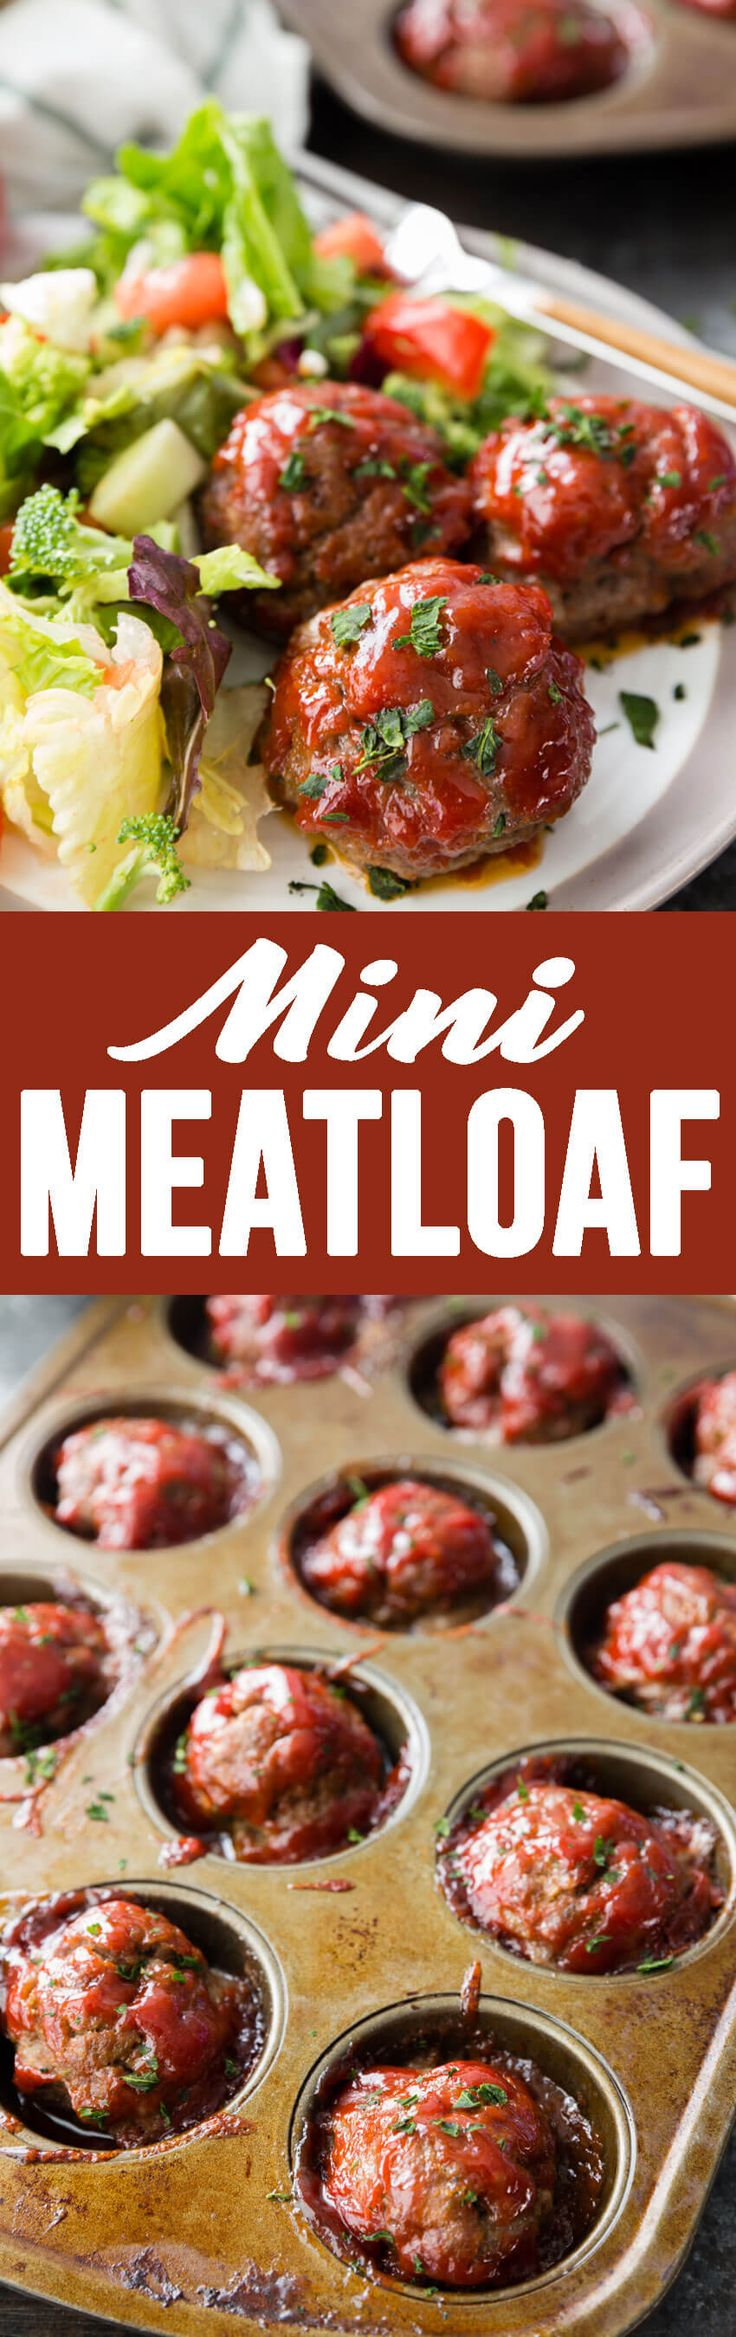 Easy Meatloaf Minis that are packed with flavor, made in a muffin tin for thorough cooking and easy serving, and rivals any meatloaf out there!